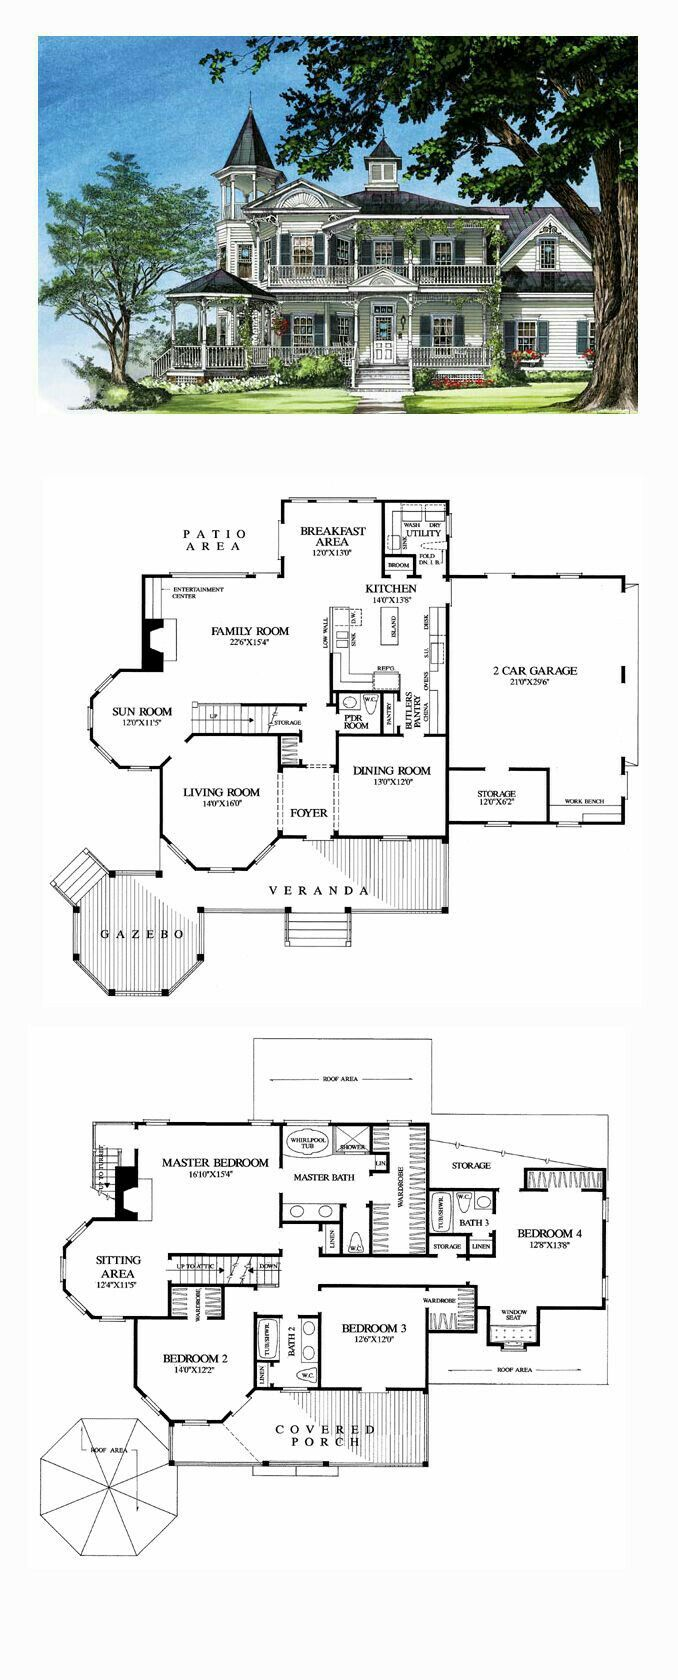 Pin By Anna Hubbard On Dream Home Ideas And Decorating Victorian House Plans Farmhouse Style House Plans Sims House Plans